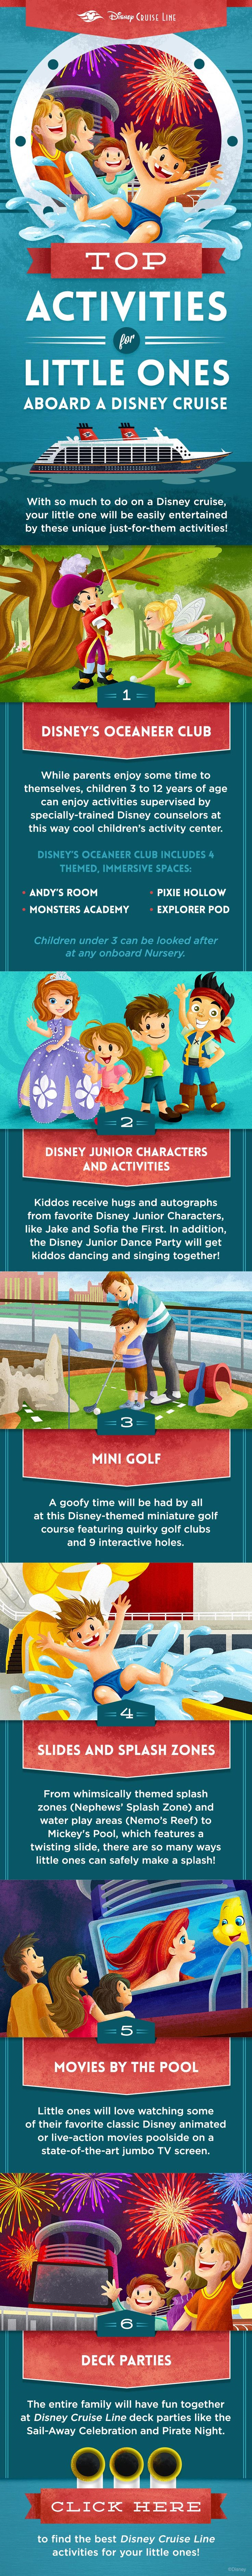 With so much to do on a Disney Cruise, your little one will be easily entertained by these unique just-for-them activities!